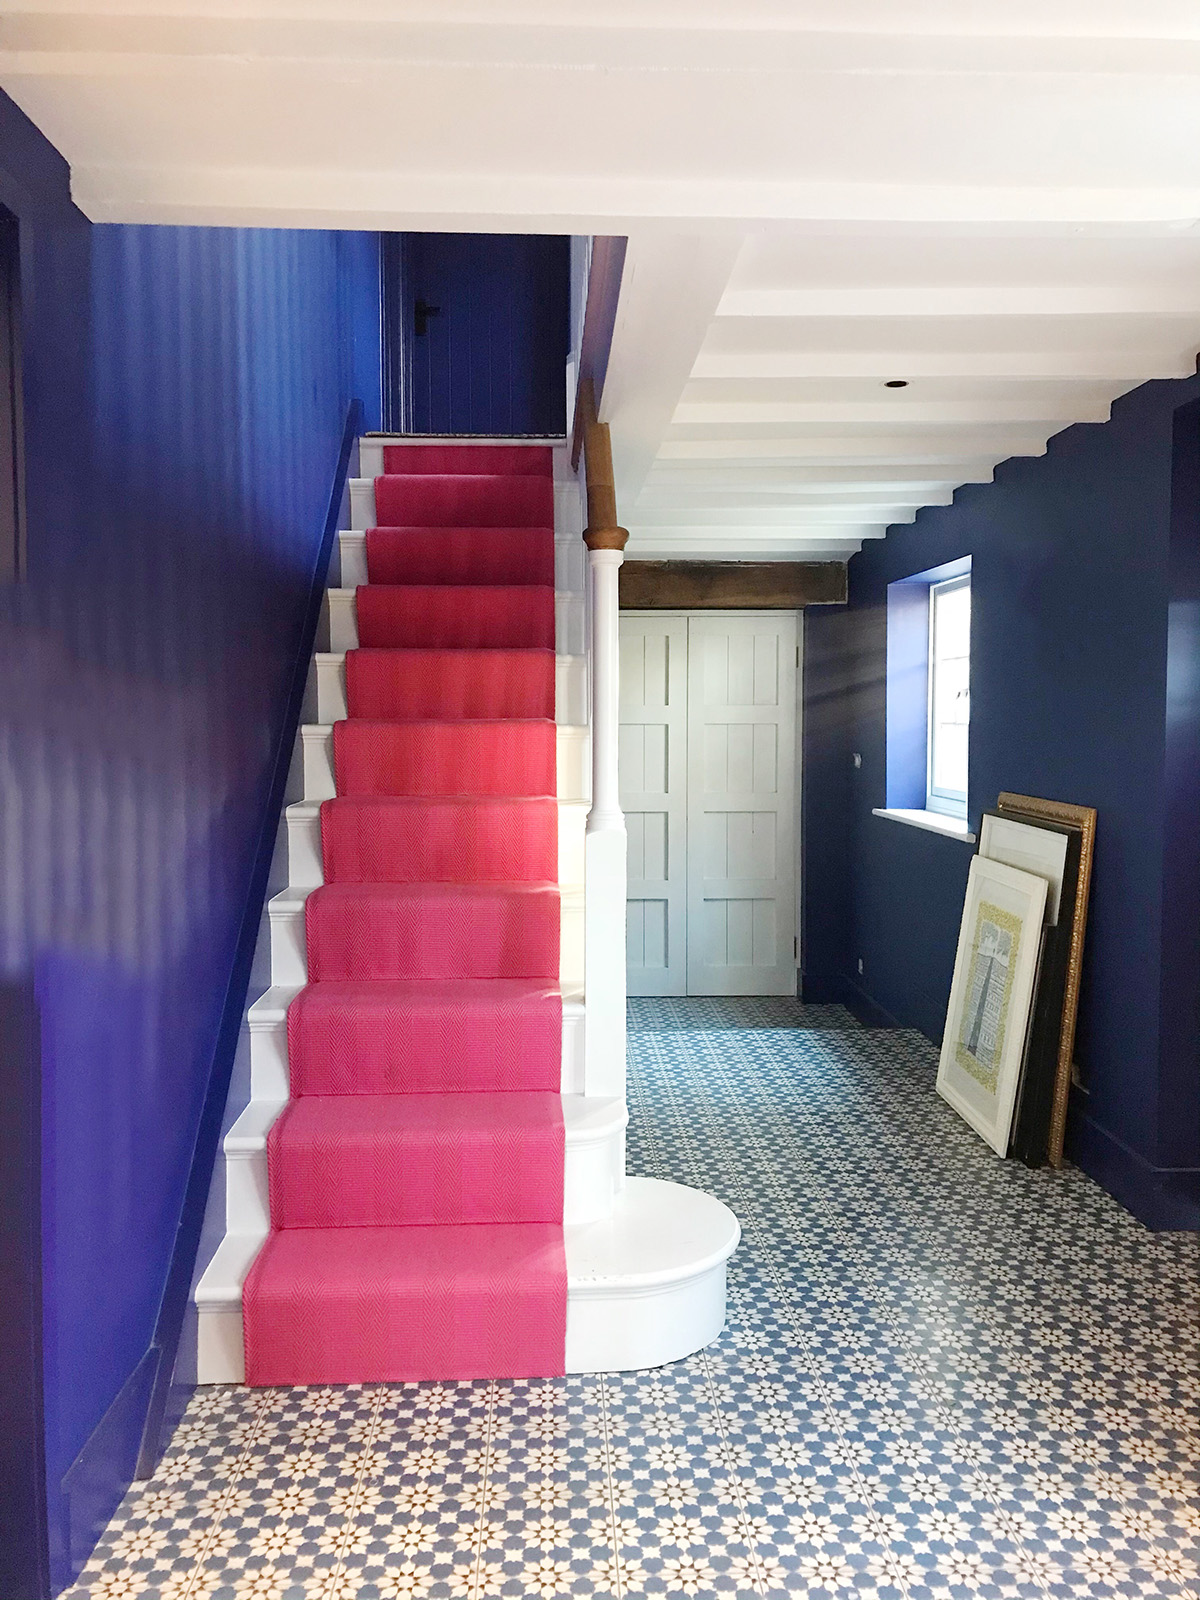 interopr designer Sophie Robinsons hallway is painted in Zoffanys Lazuli blue and has a bright pink stair runner. The cement tiles are by Claybrook studio